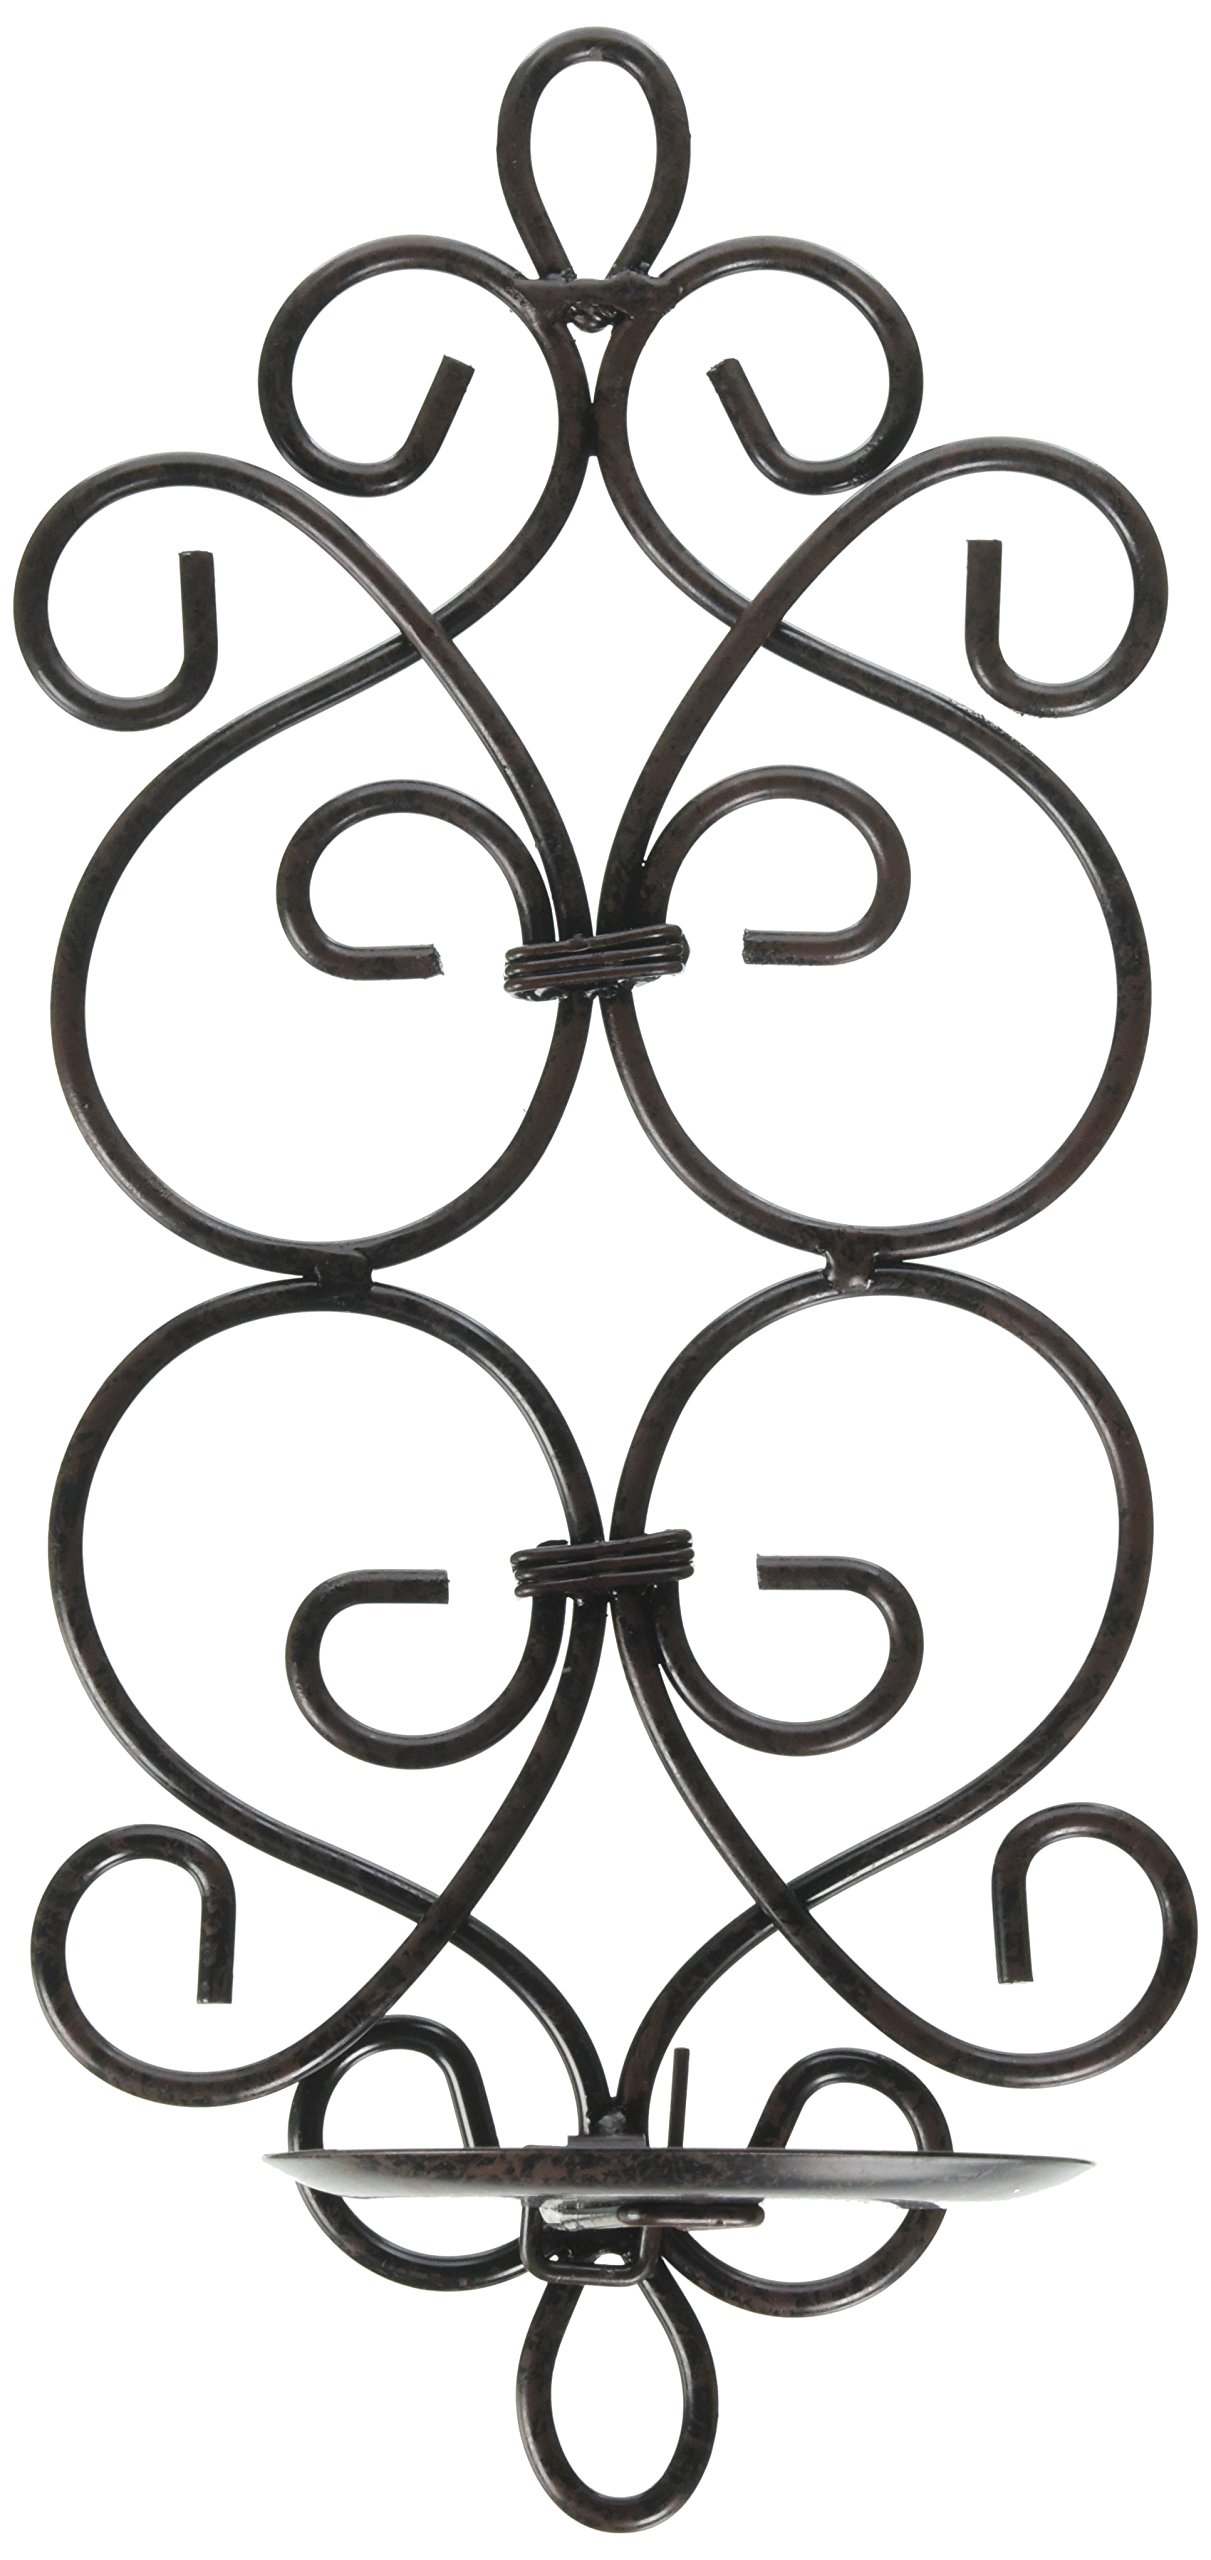 Two Sconces Set - Rustic Dazzling Sconce Candle Holder Wall Decor